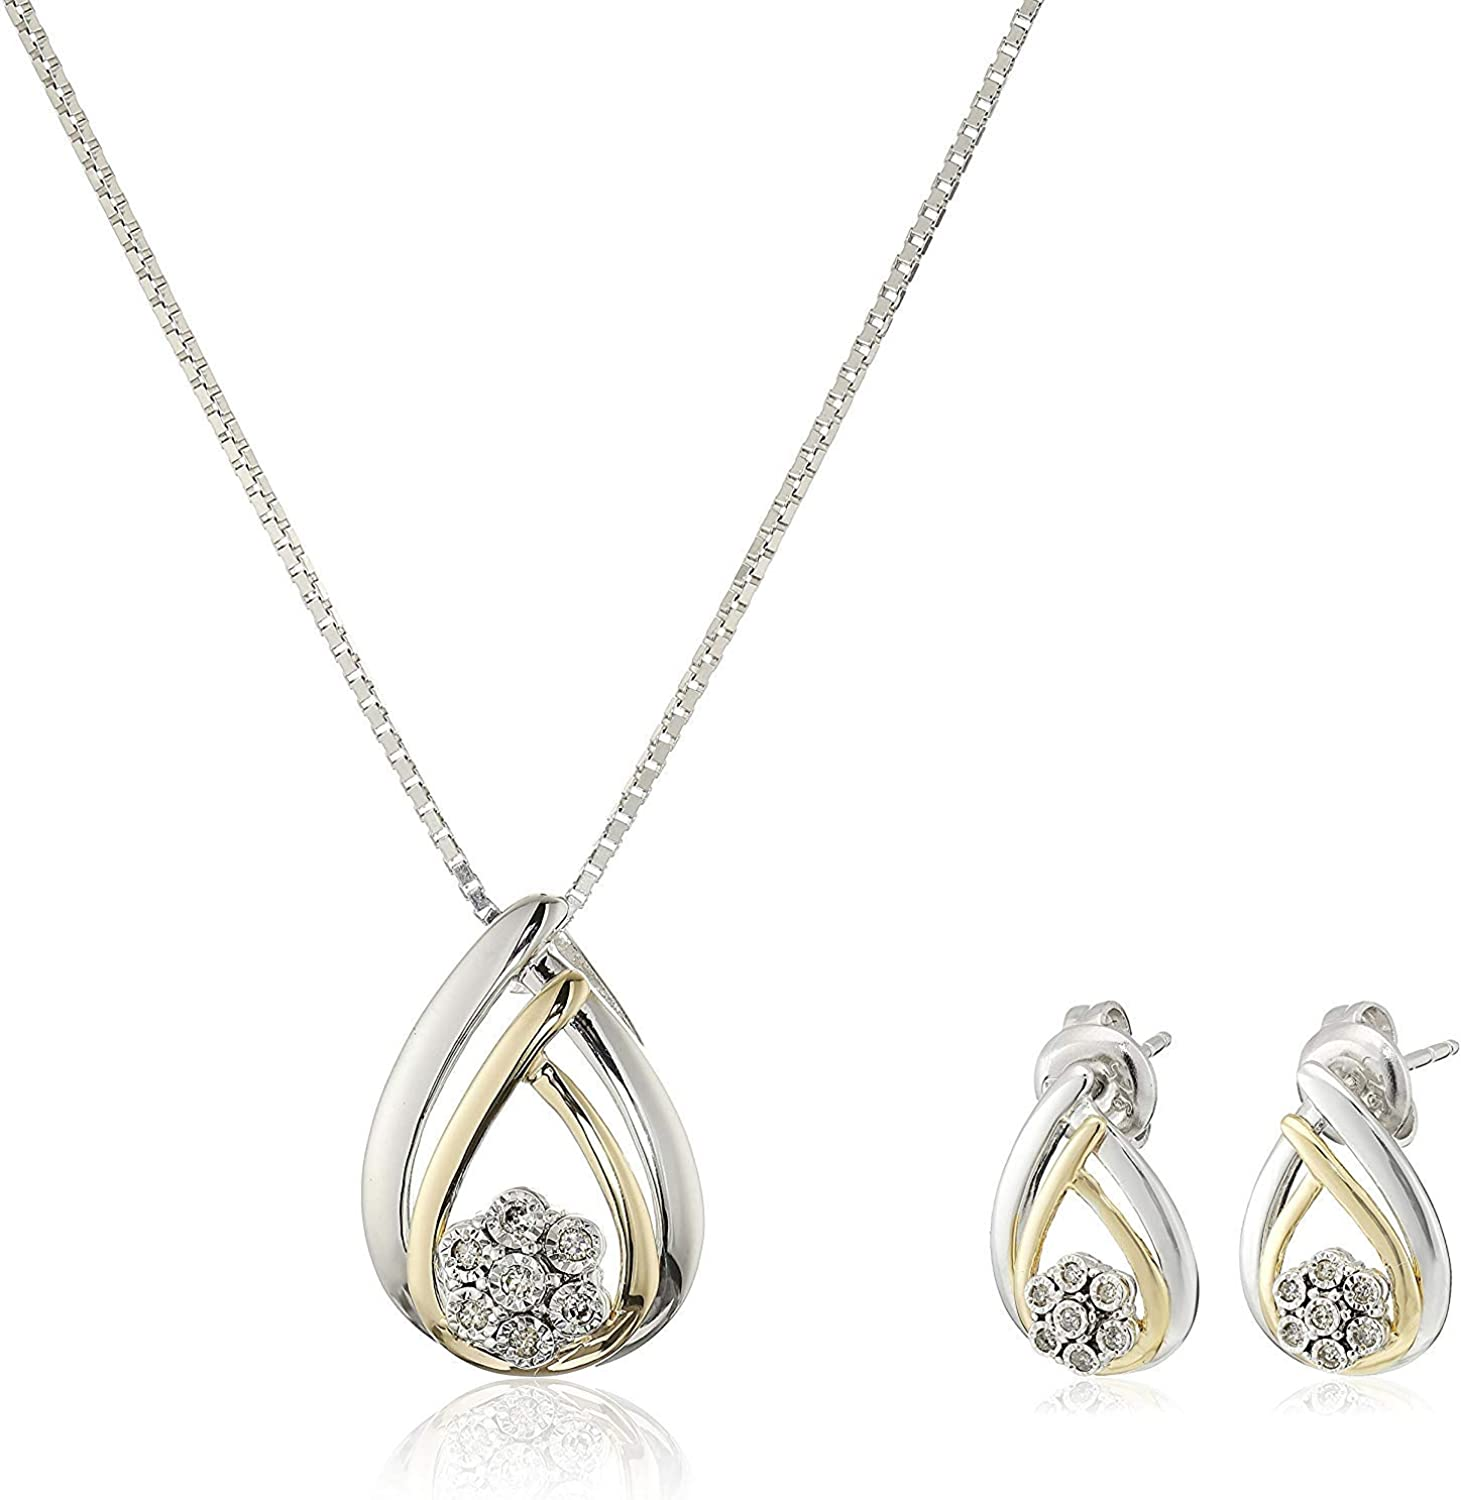 20 x 10 925 Sterling Silver Cubic Zirconia and Teardrop Pendant